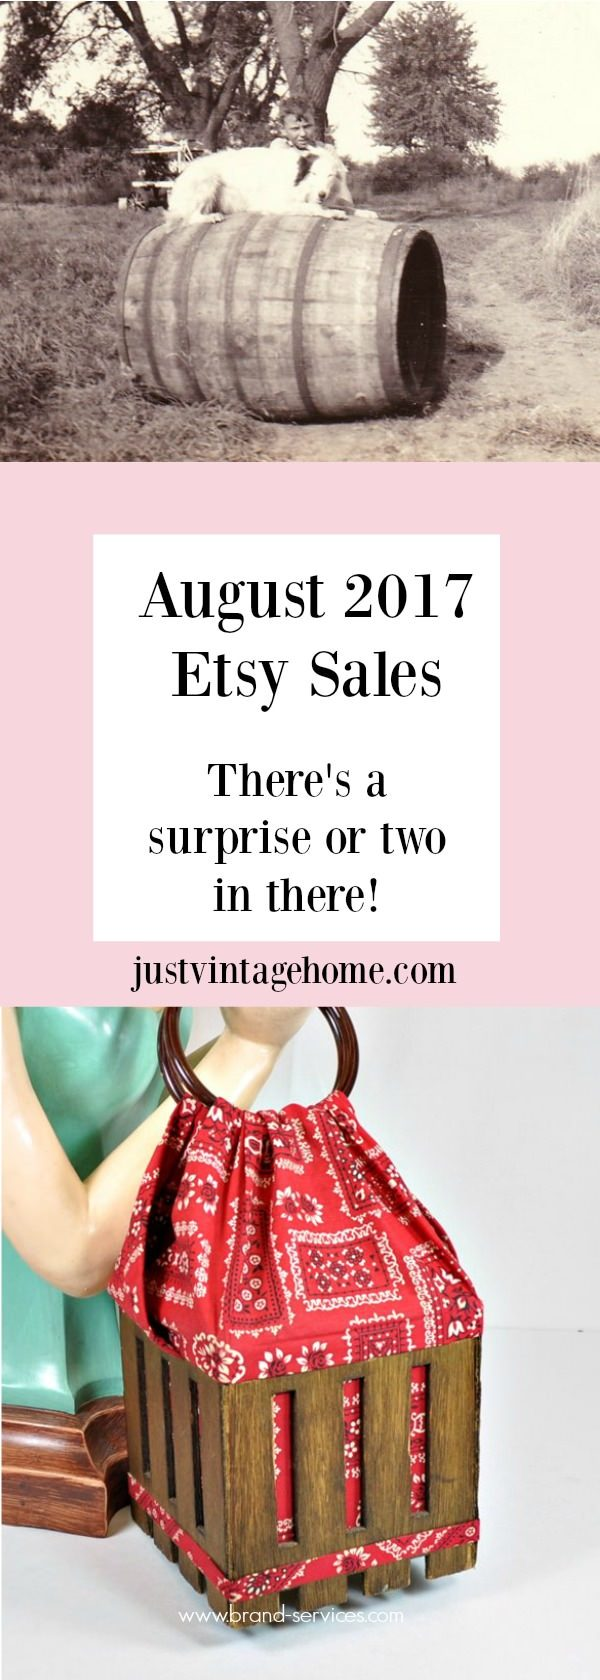 August 2017 Etsy Sales Reports Pinterest Image